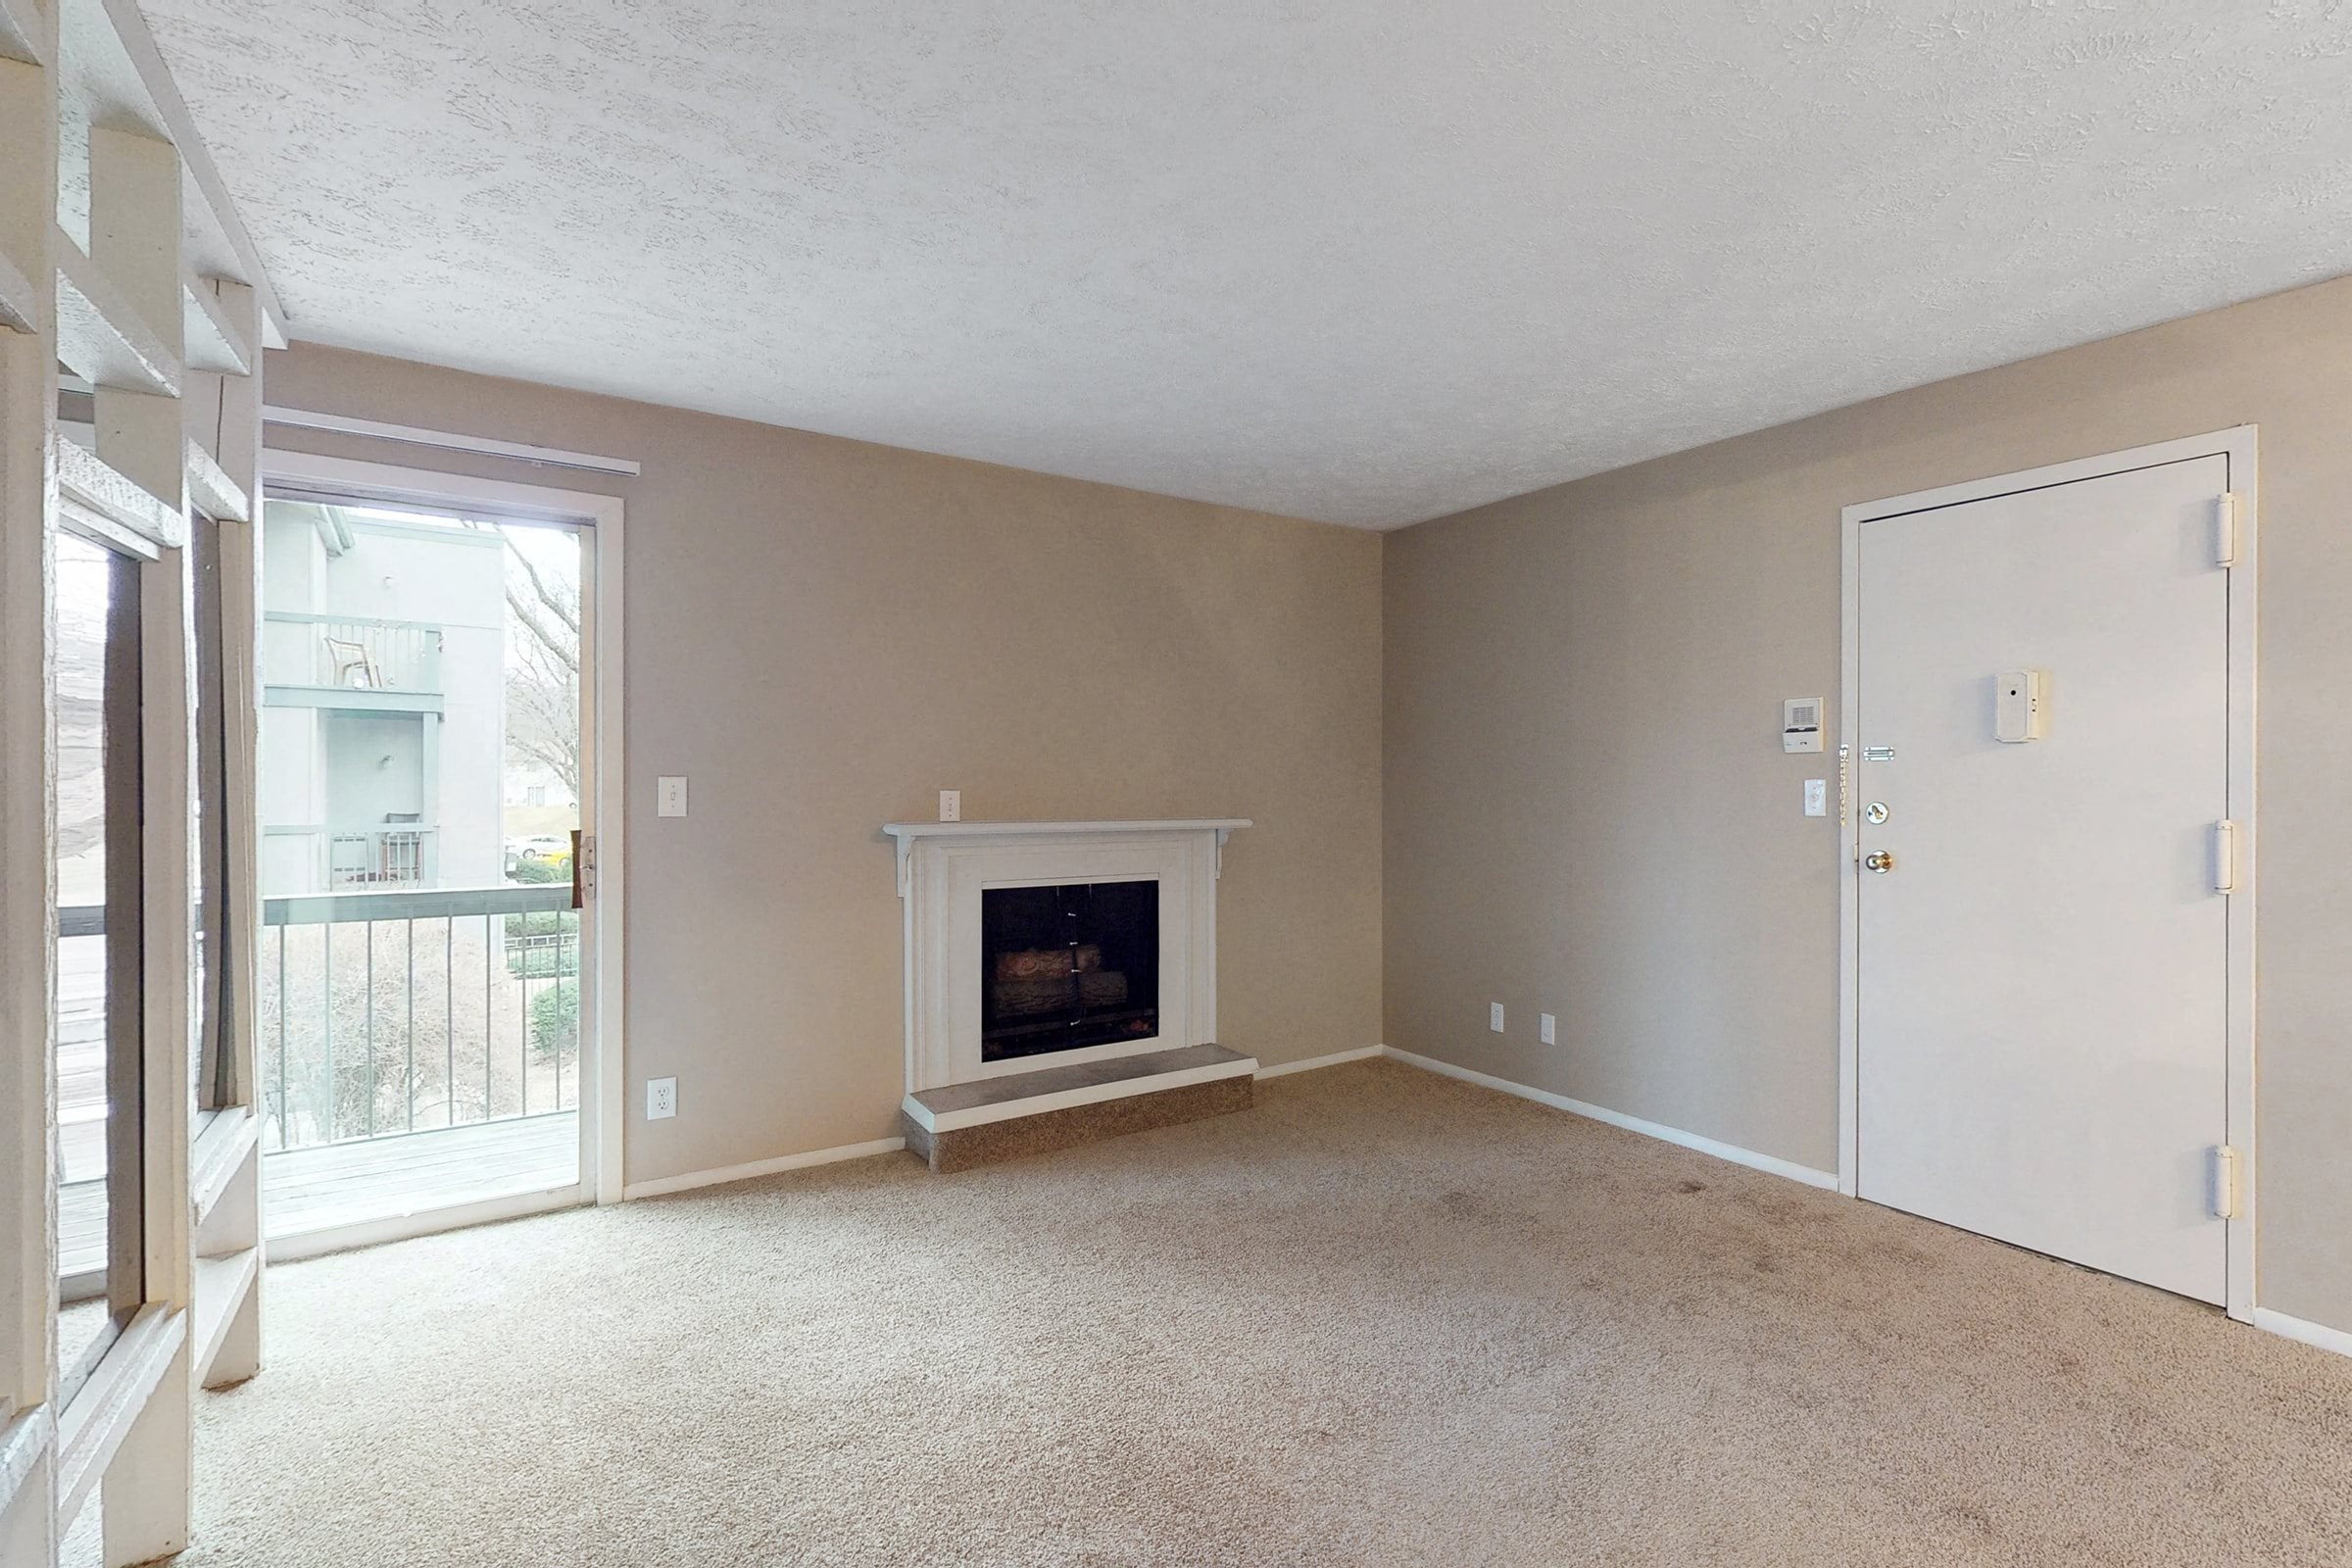 Photos and Video of Westwood Apartments in Omaha, NE